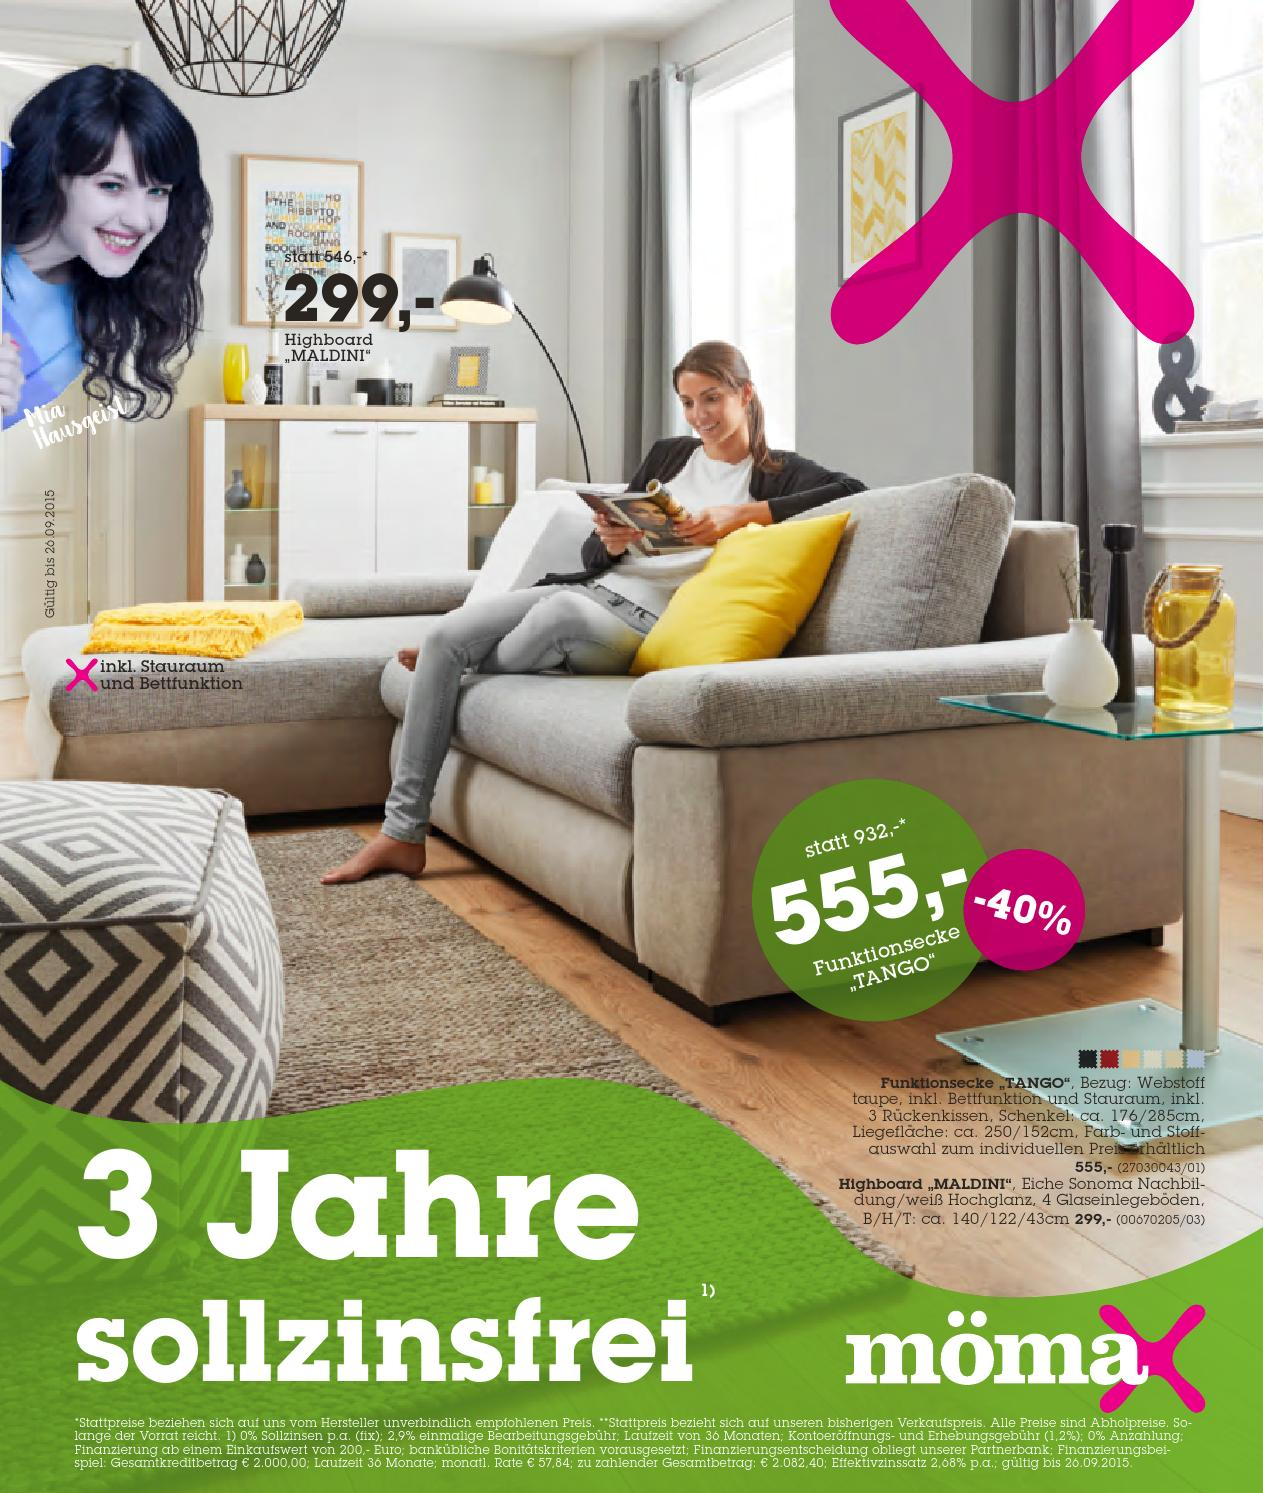 Ausziehbett Mömax Moemax Angebote 14 26september2015 By Promoangebote At Issuu